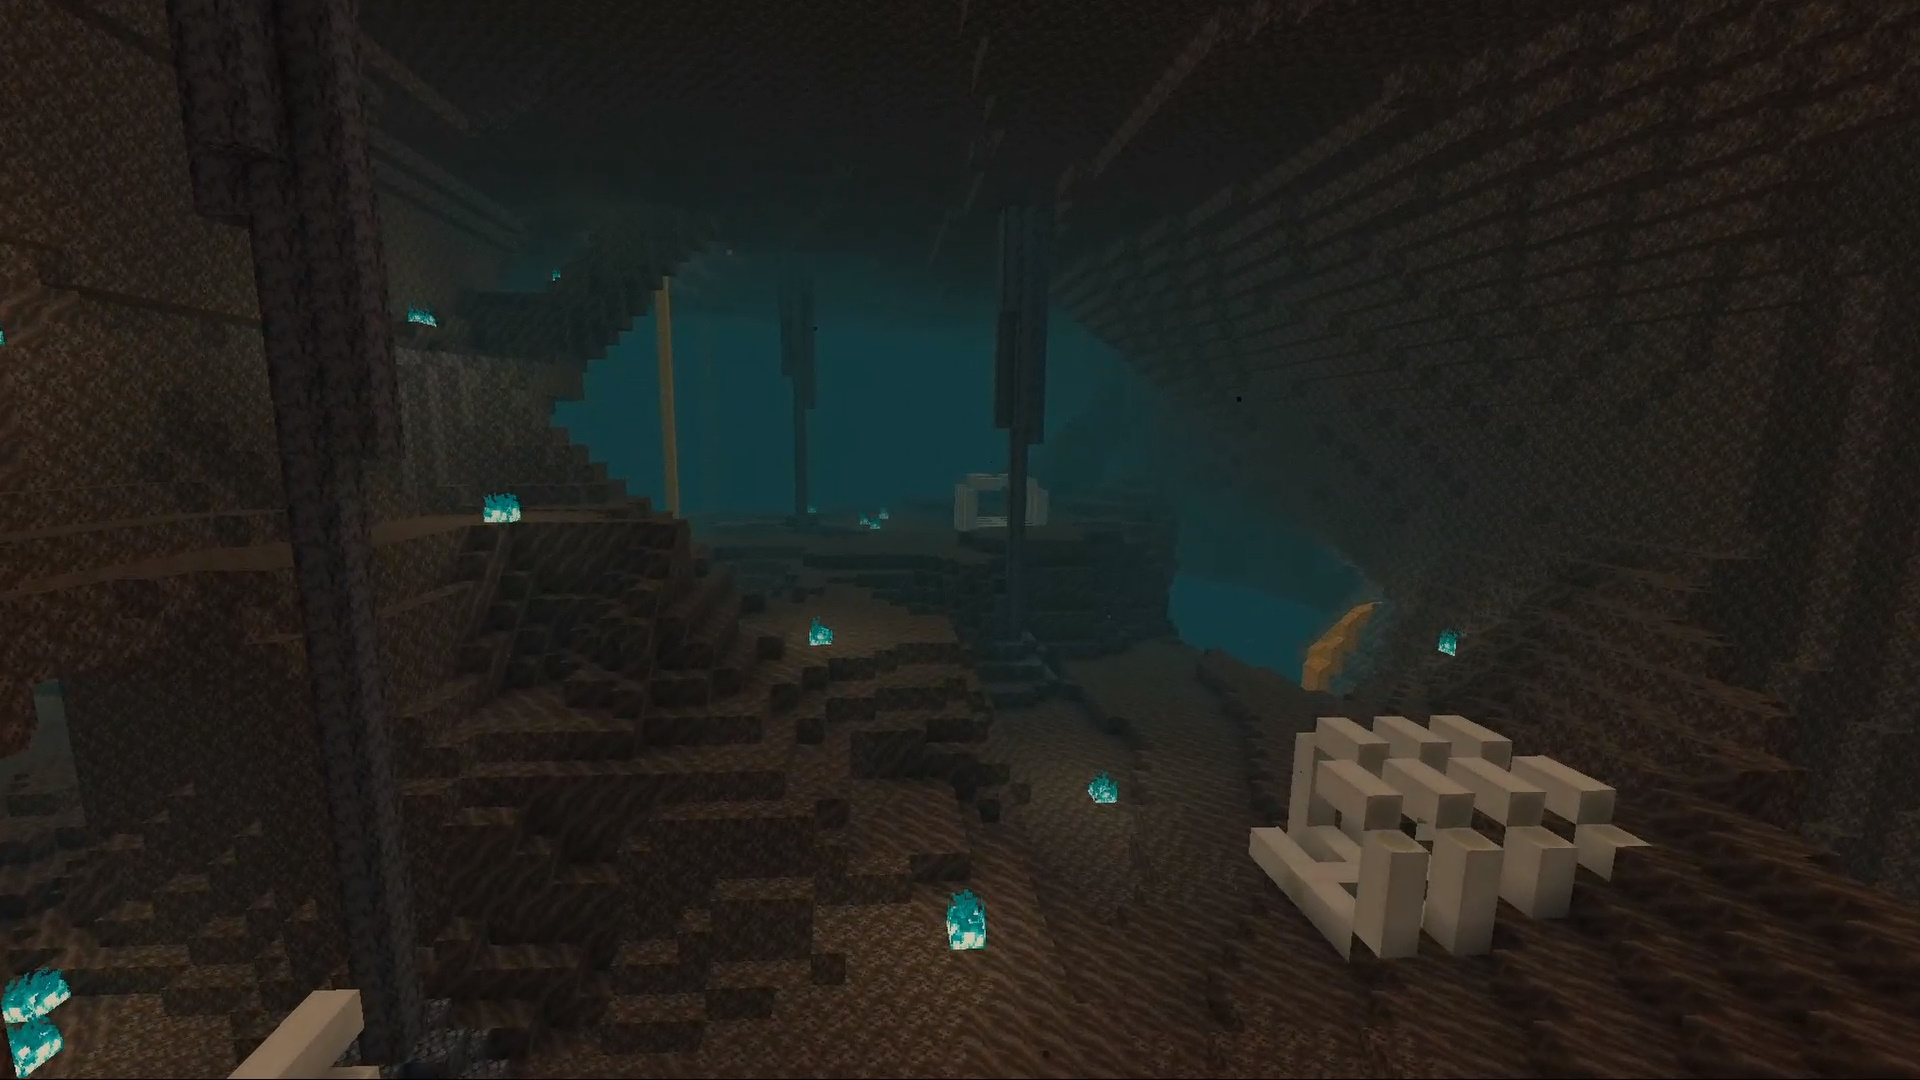 Minecraft's Nether is adding two new biomes